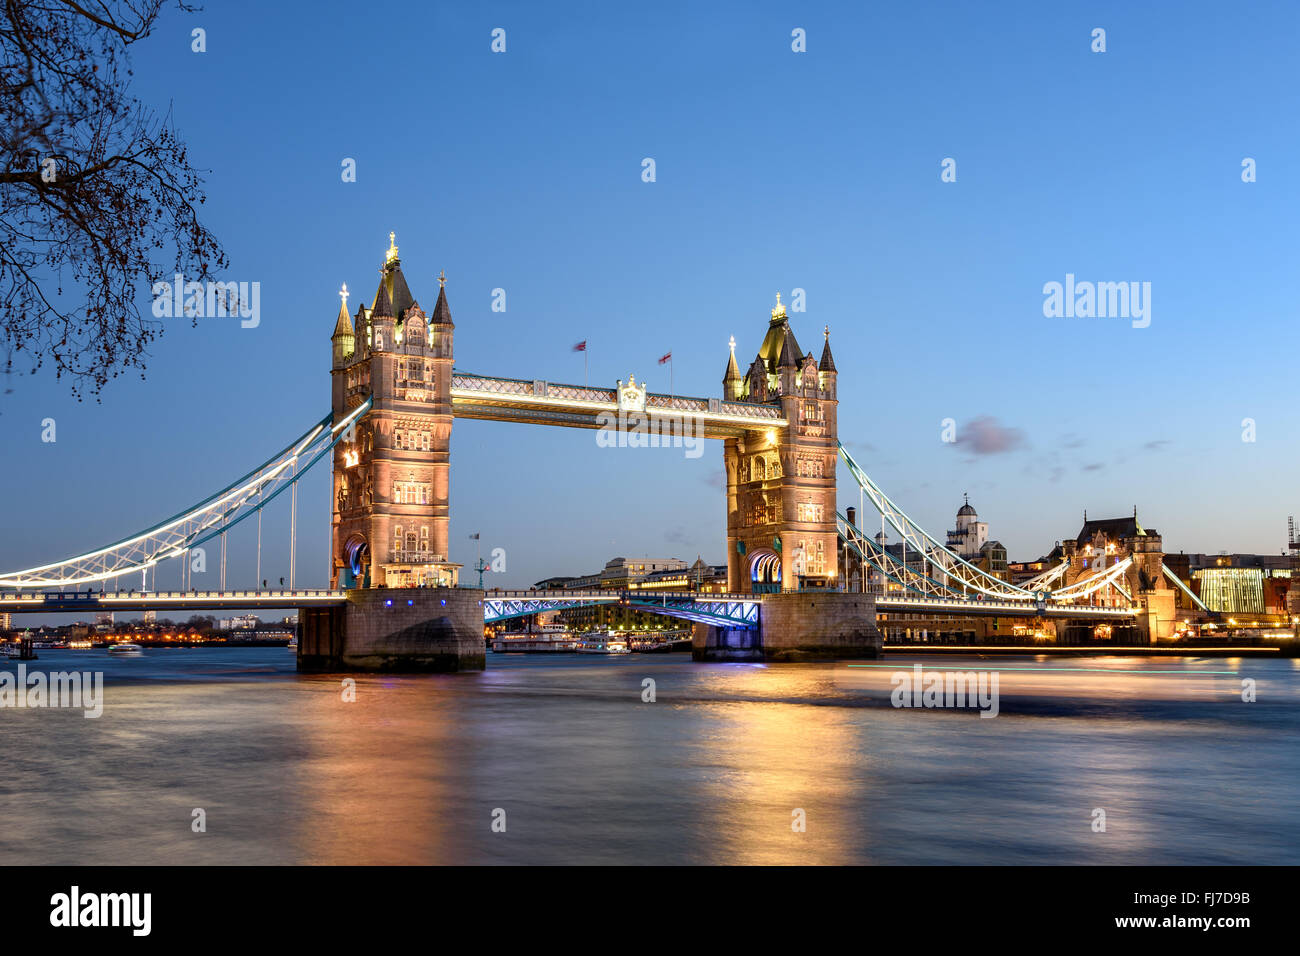 Tower bridge of London is the most famous landmark and tourist attraction. - Stock Image